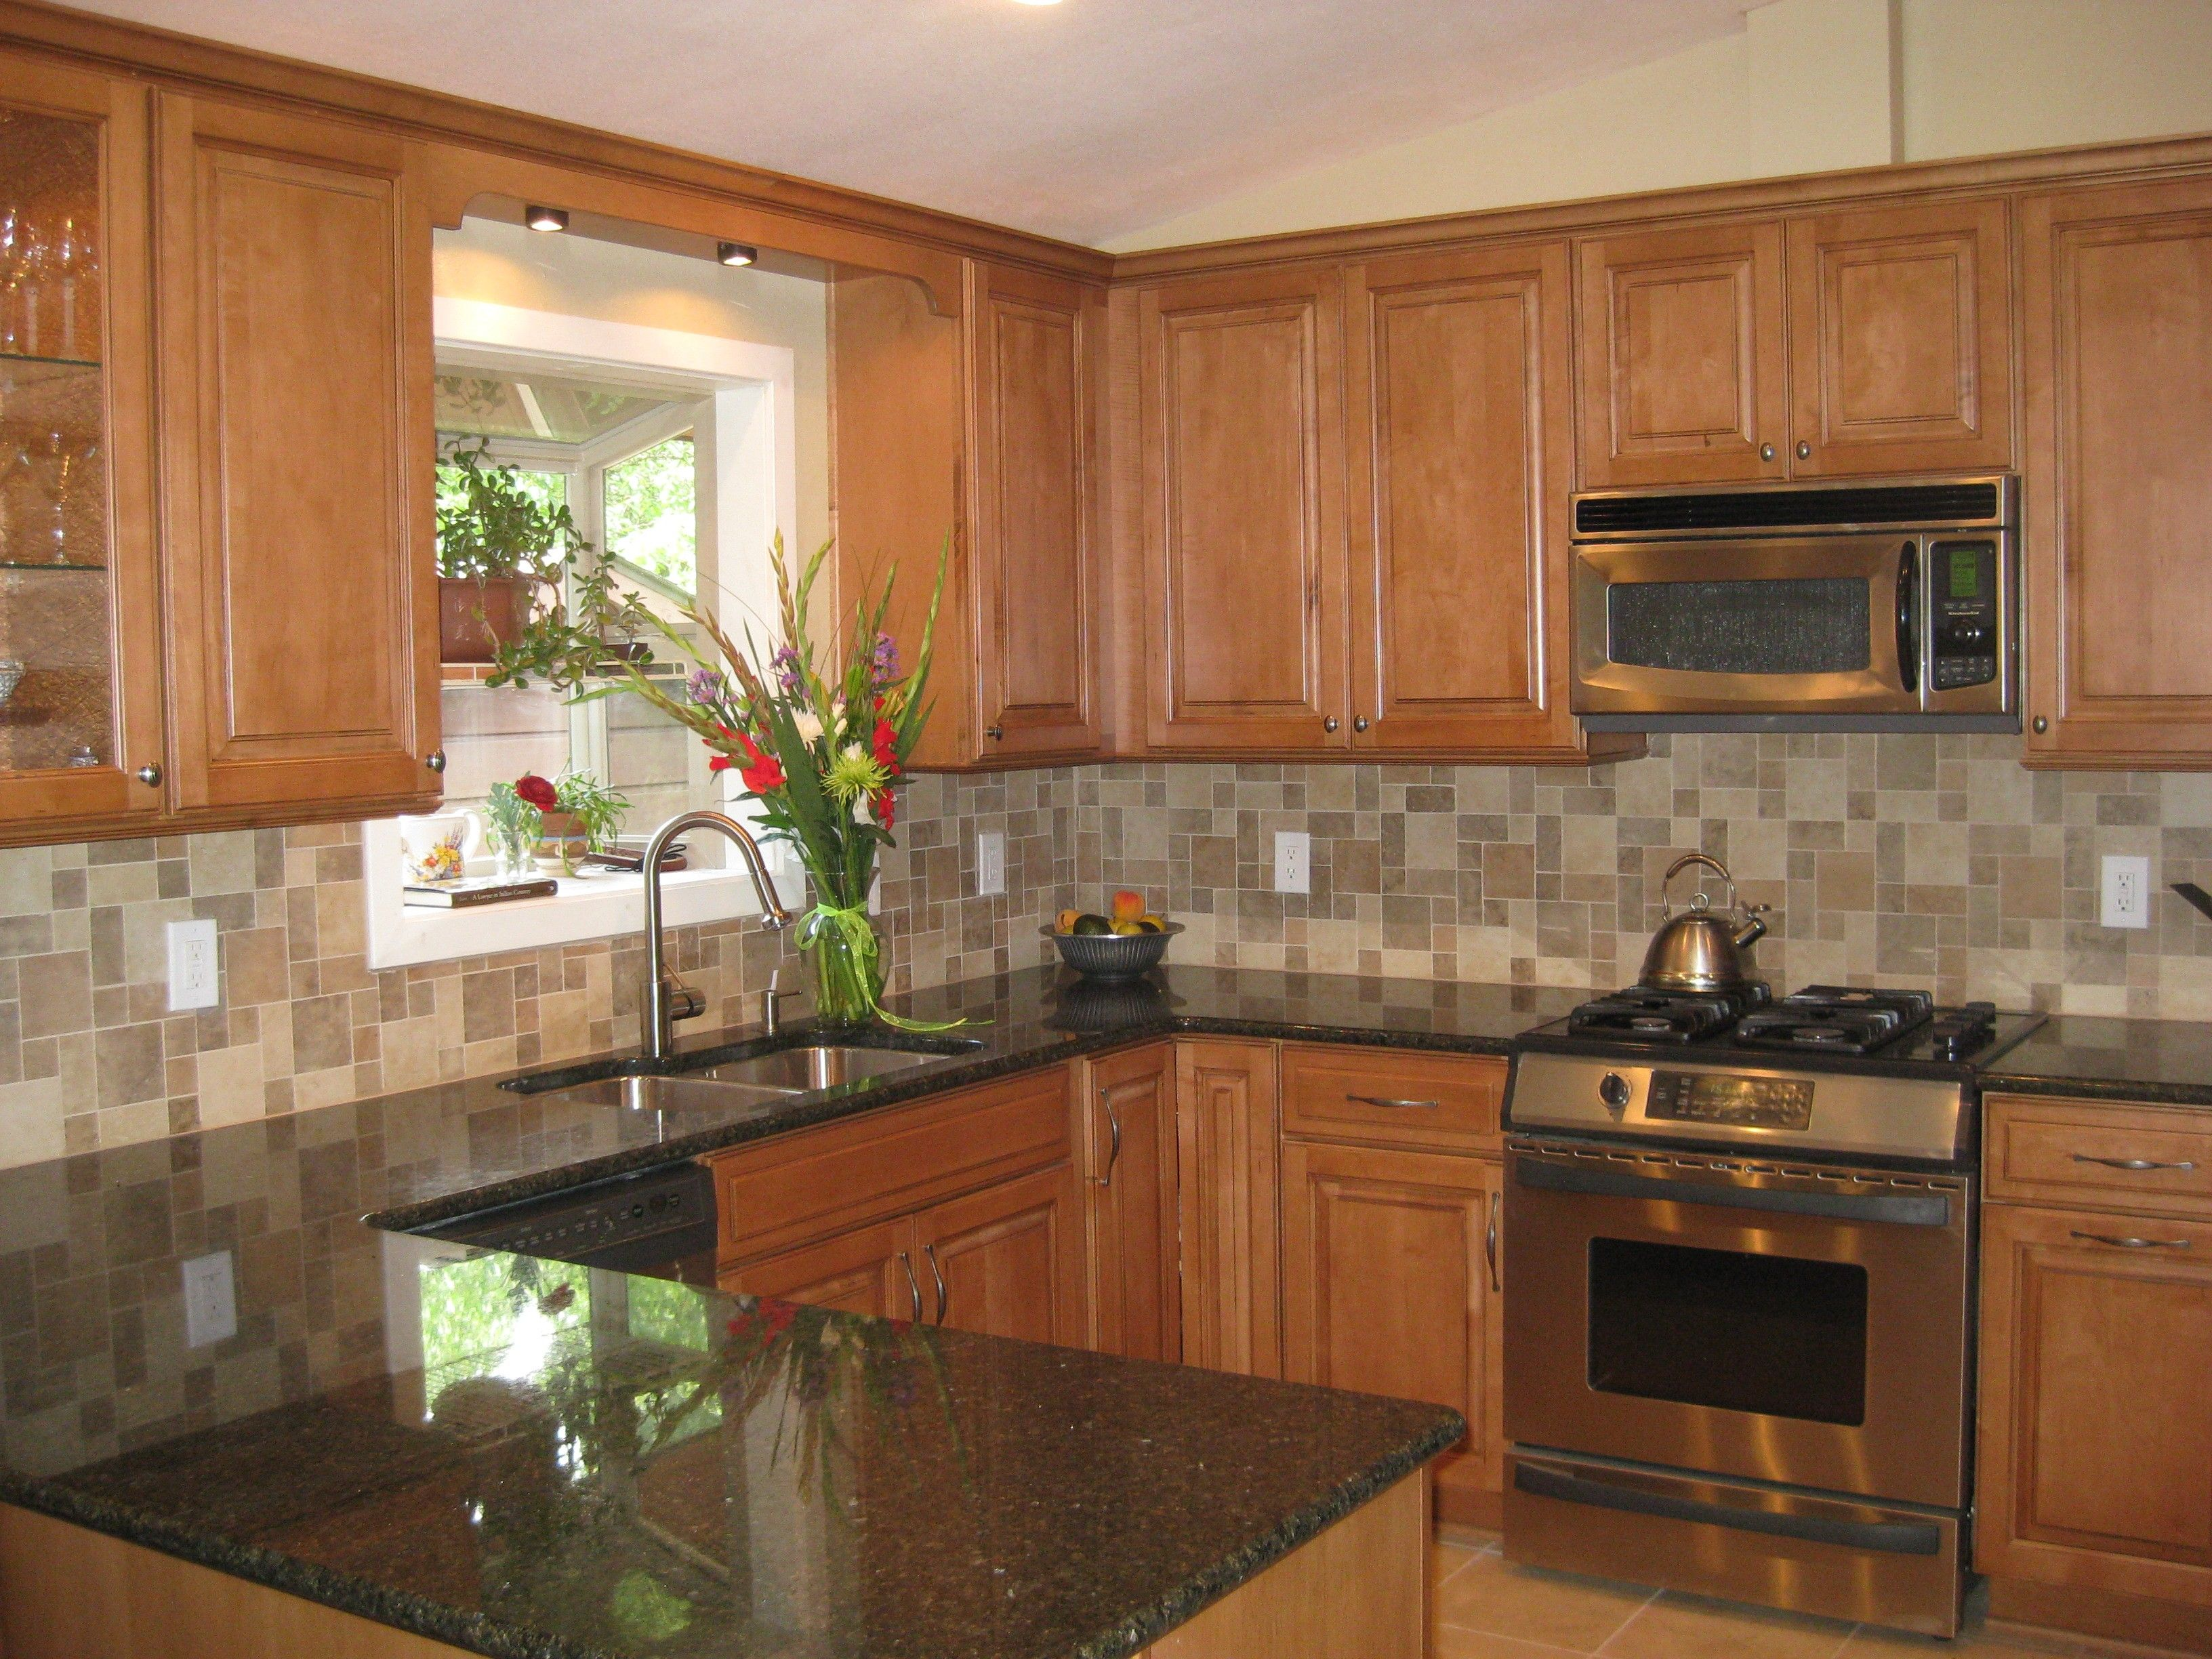 Black Granite Countertops With Tile Backsplash Property lacquered wood kitchen cabinet grey metal single metal white tile